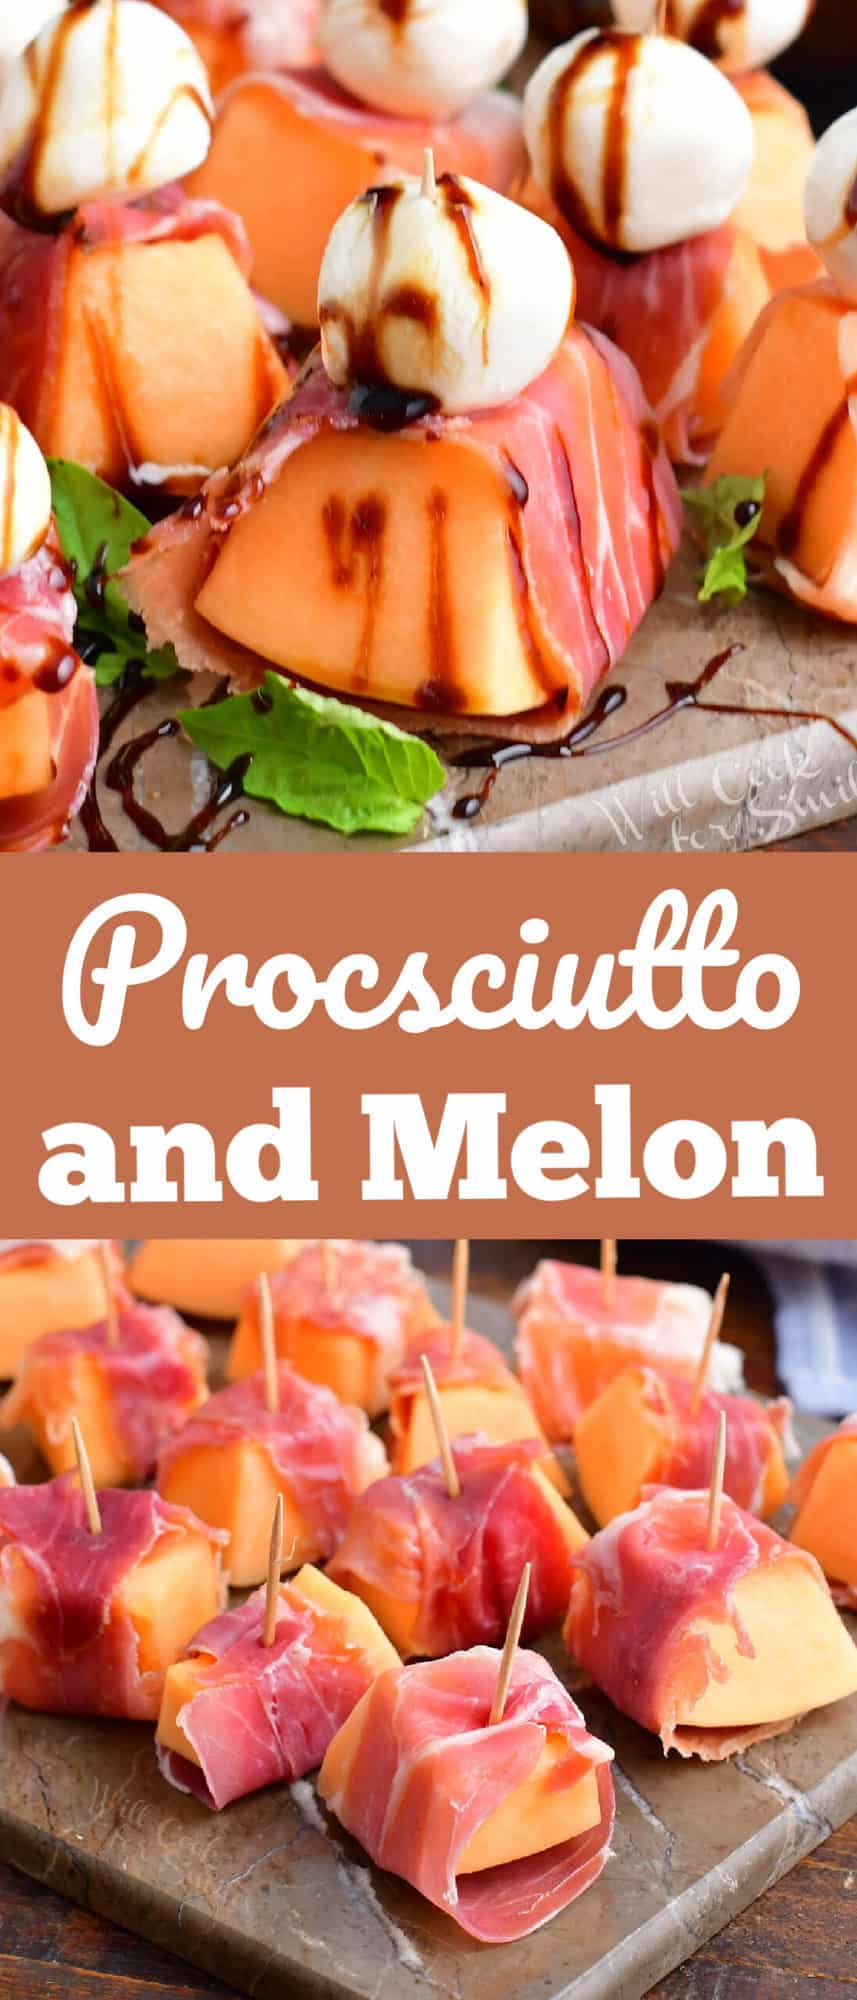 title collage of prosciutto and melon images close up with and without cheese and glaze